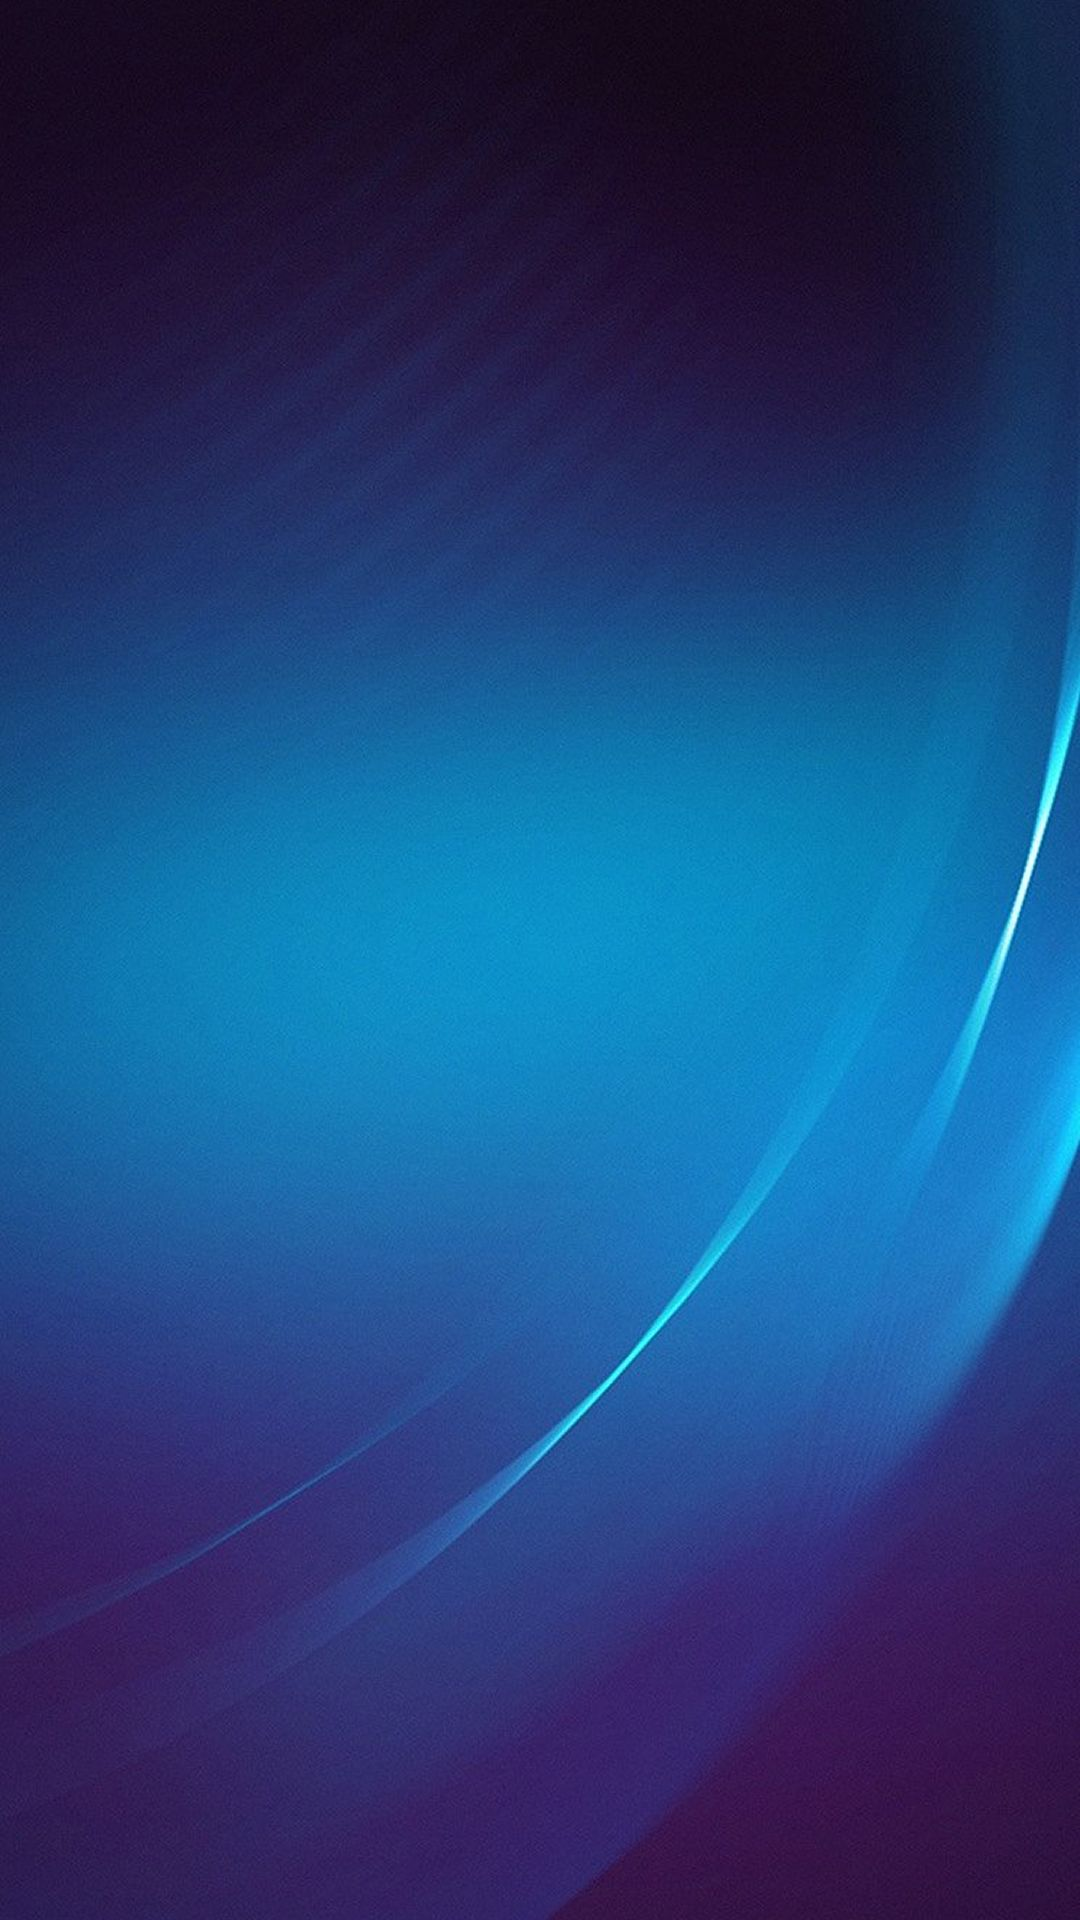 blue swirl pattern background iphone 6 wallpaper | blue wallpaper